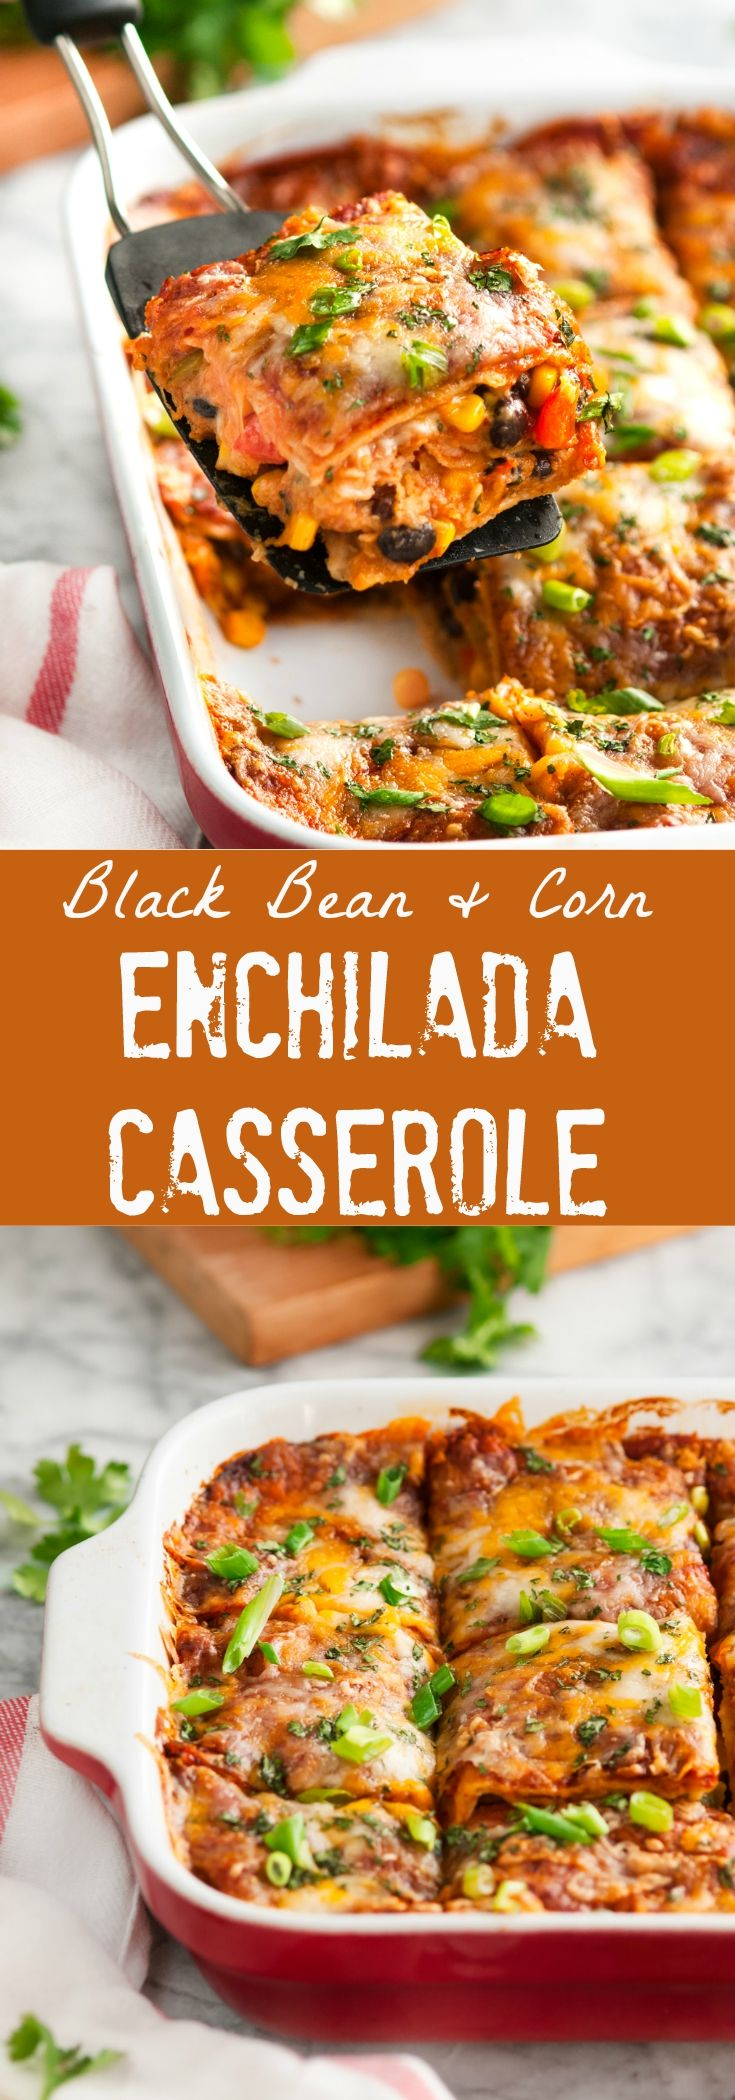 Vegetarian Black Bean and Corn Enchilada Casserole - With easy prep and a customizable spice level to fit your palette, it's perfect for the whole family!